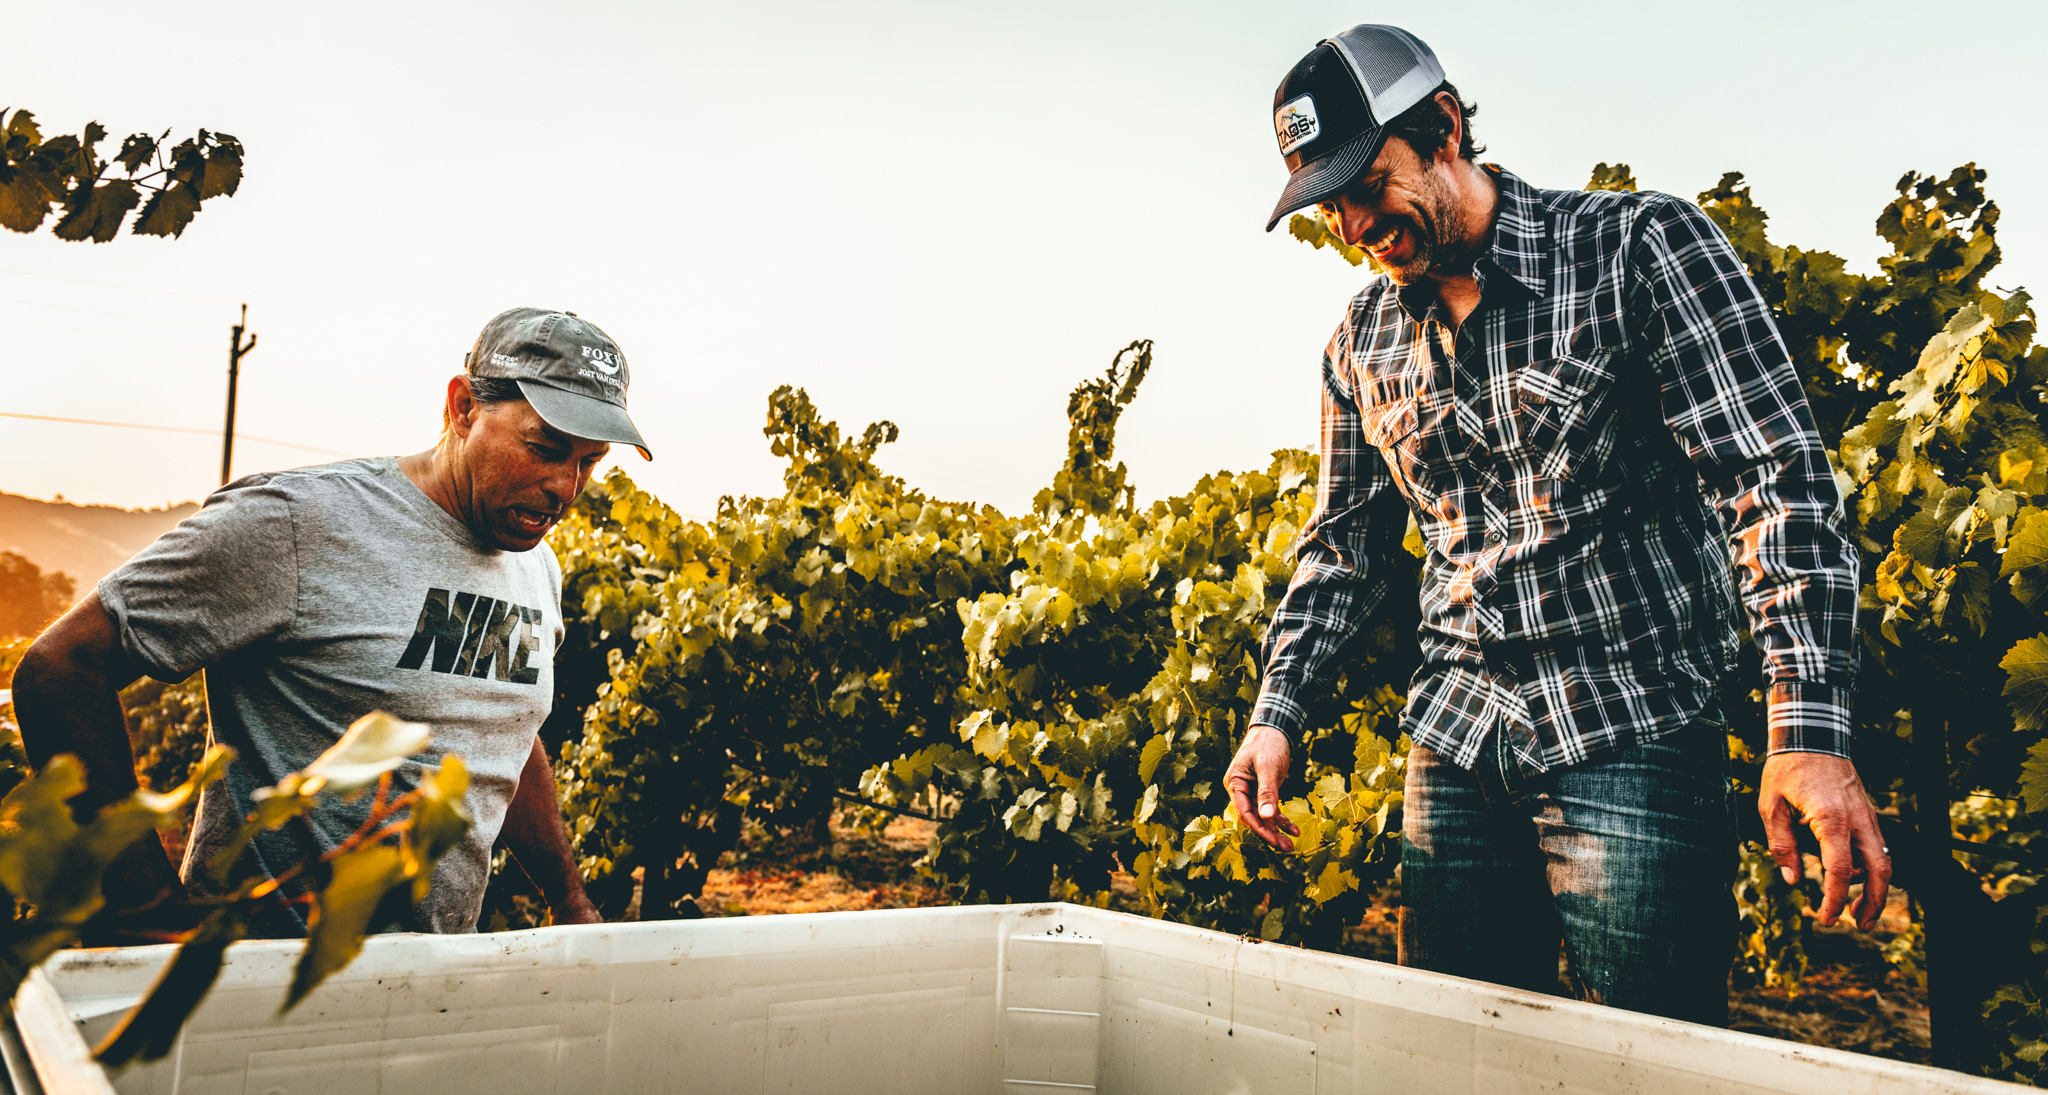 California : Mendocino : Lolonis Vineyard owner Athan Poulos and LIOCO Wine owner Matt Licklider inspecting incoming fruit